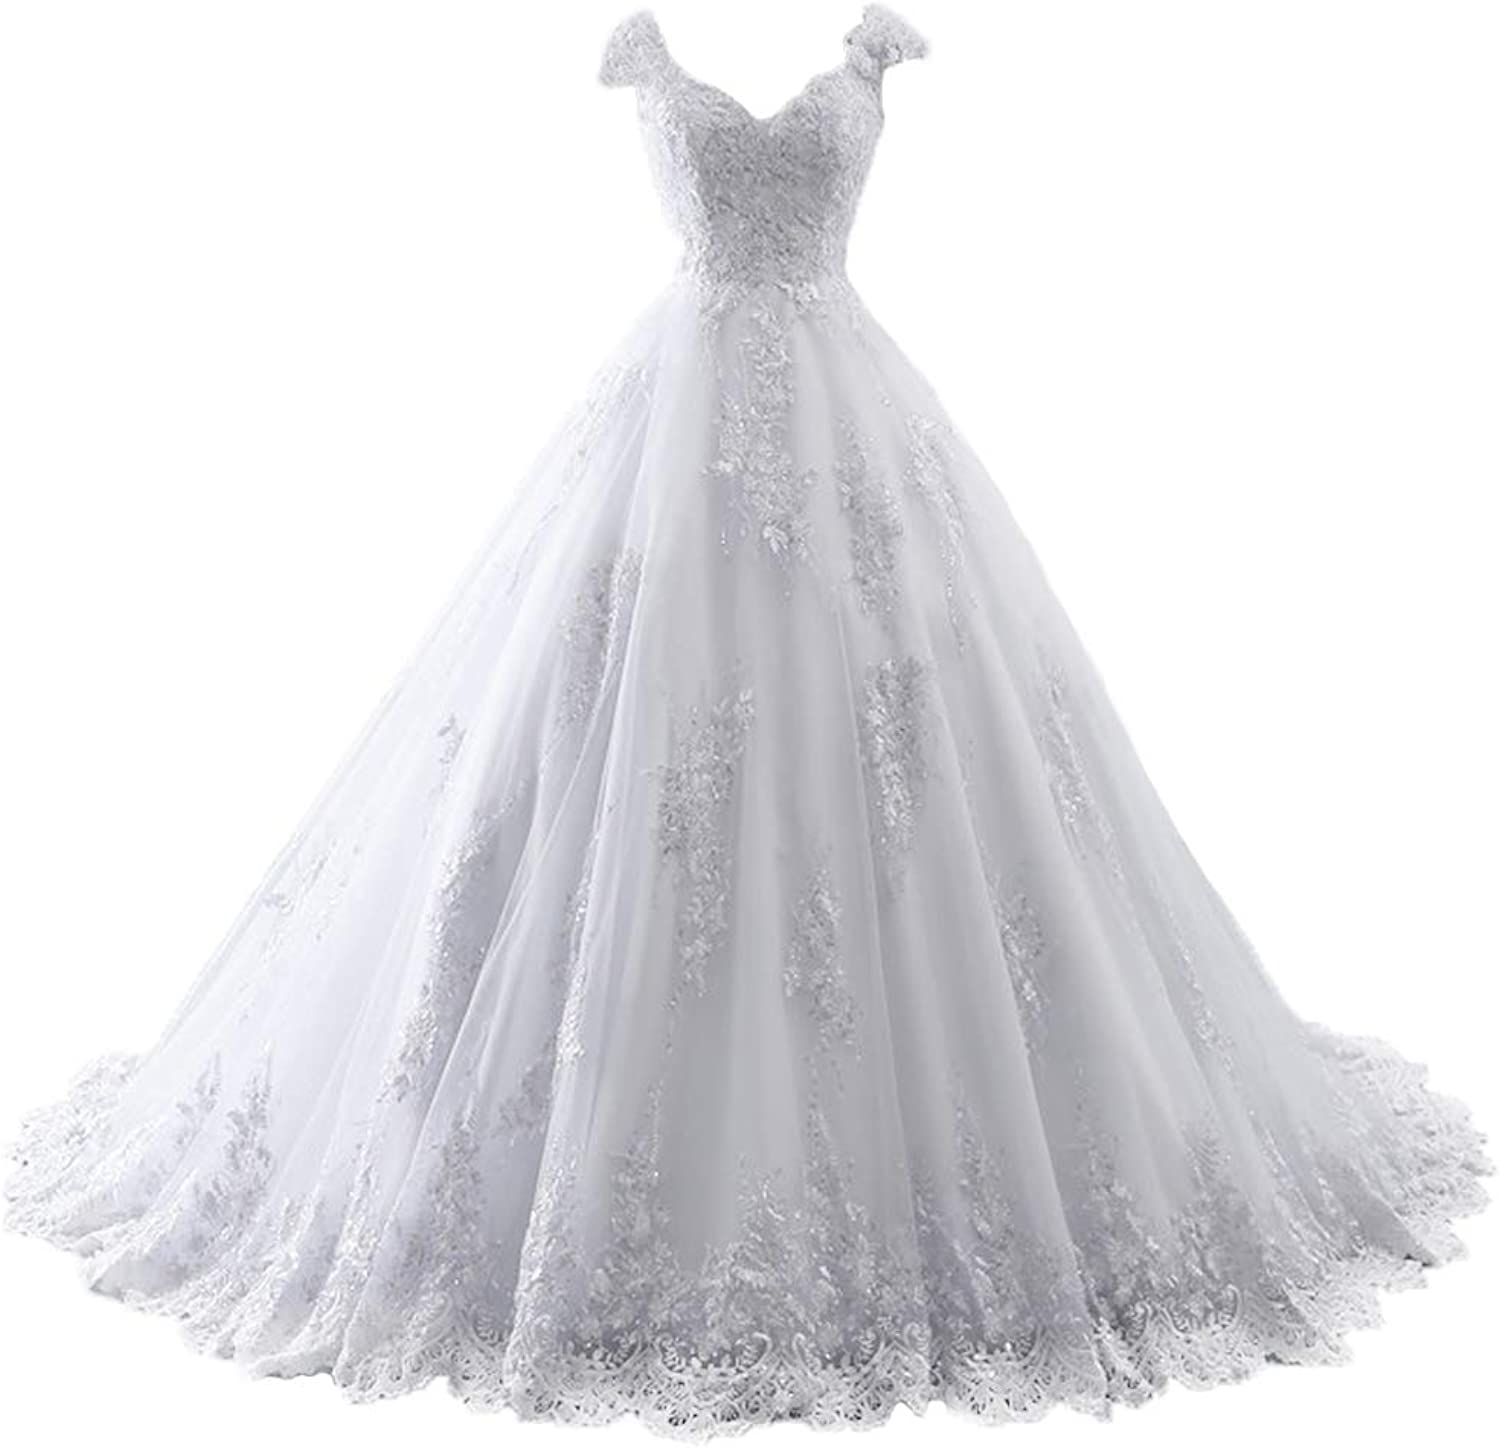 1361dd84132 Cdress Ball Gown Wedding Dresses Lace Appliques Bridal Gowns VNeck Cap  Sleeves for Bride